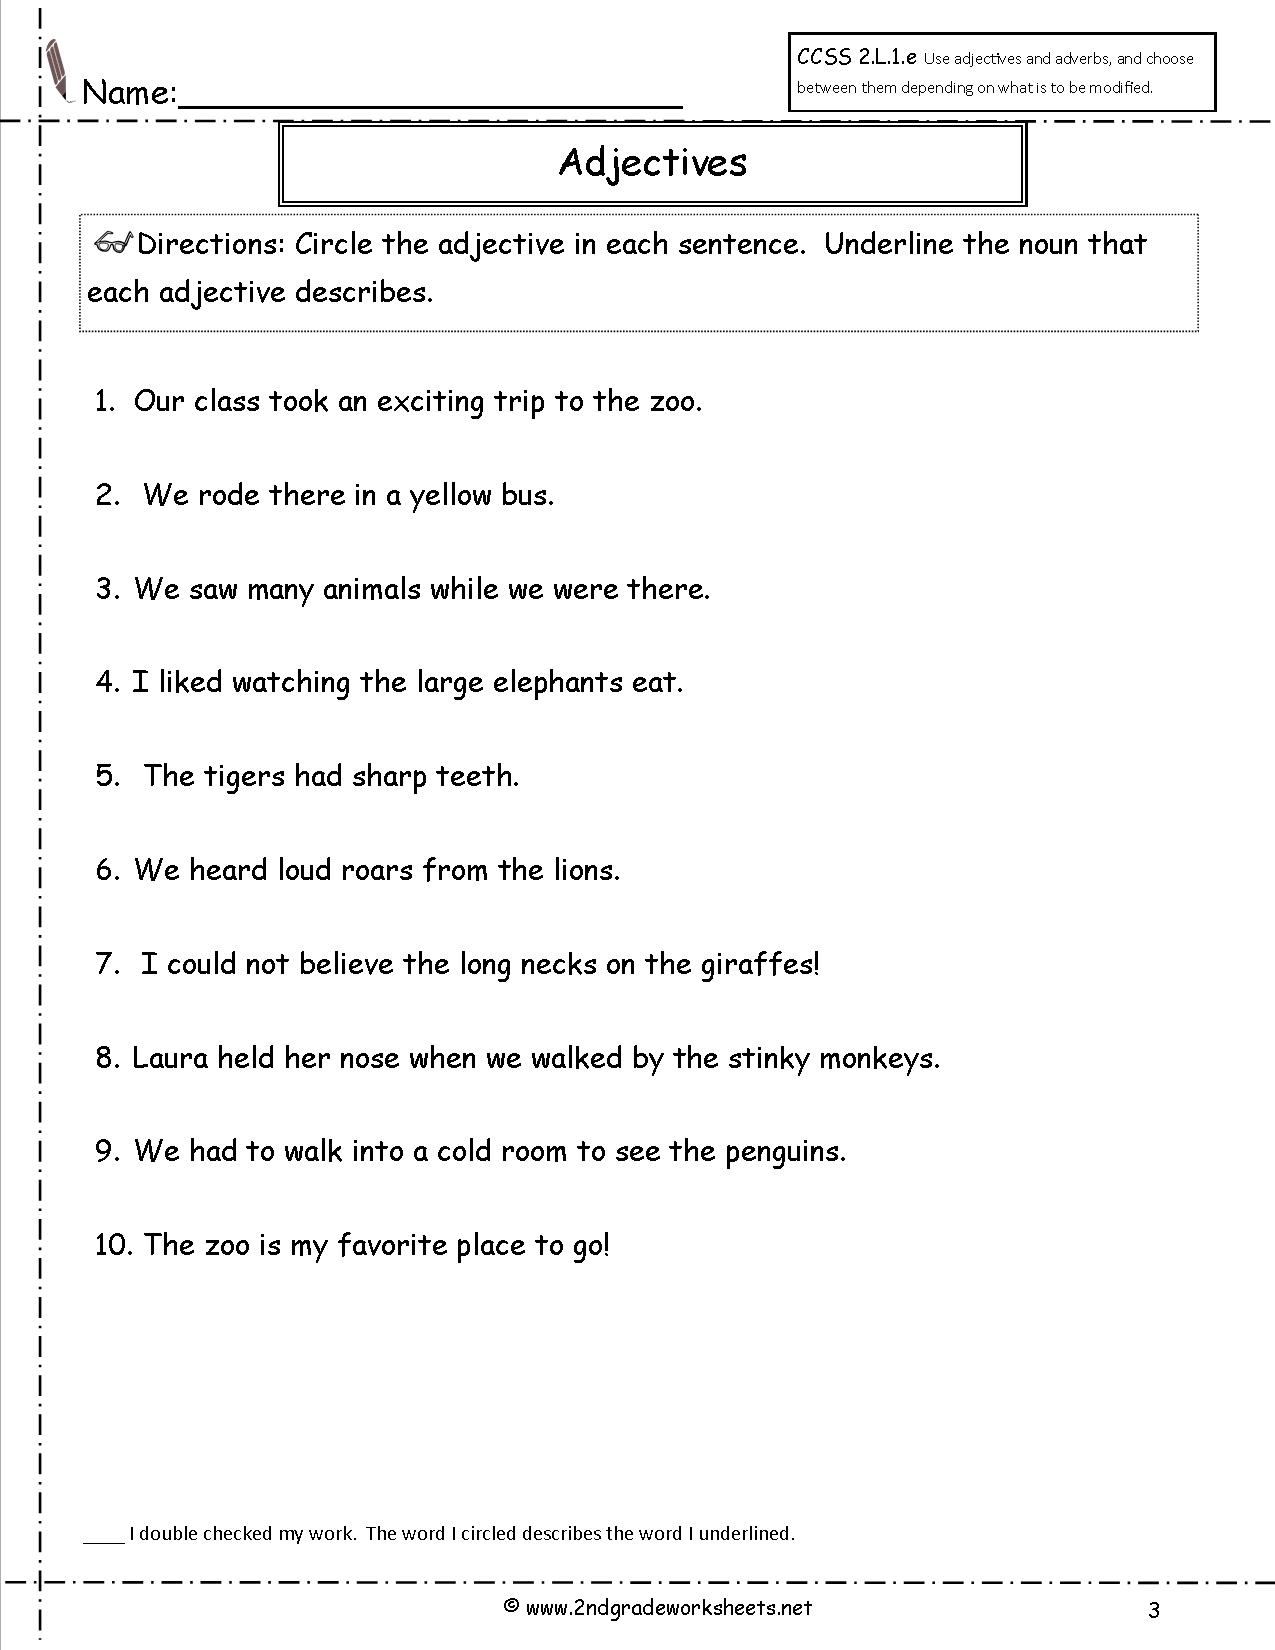 Adjective Worksheets For 2nd Grade